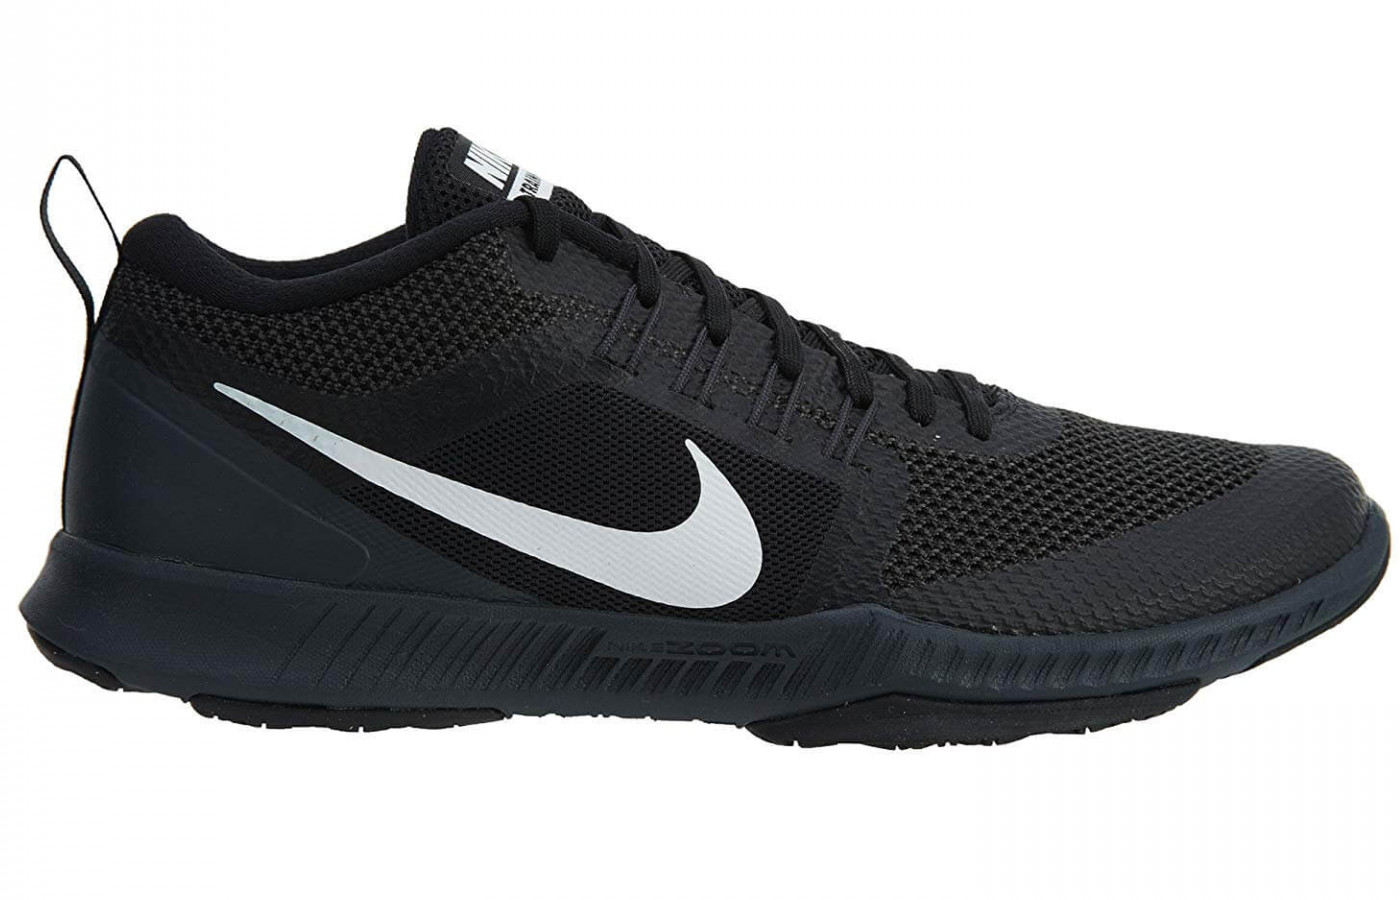 The Zoom Air unit midsole is cushioned and comfortable.